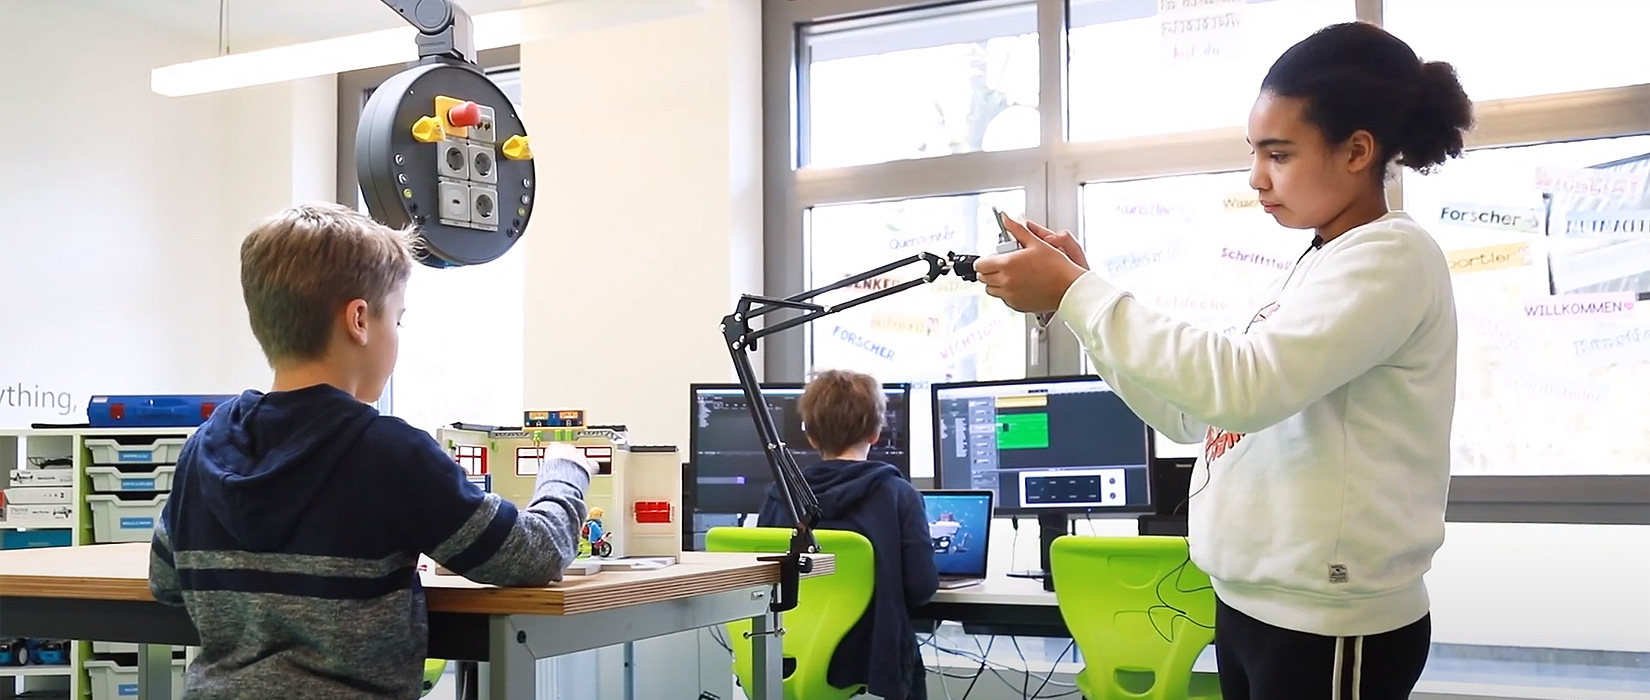 Makerspace in use